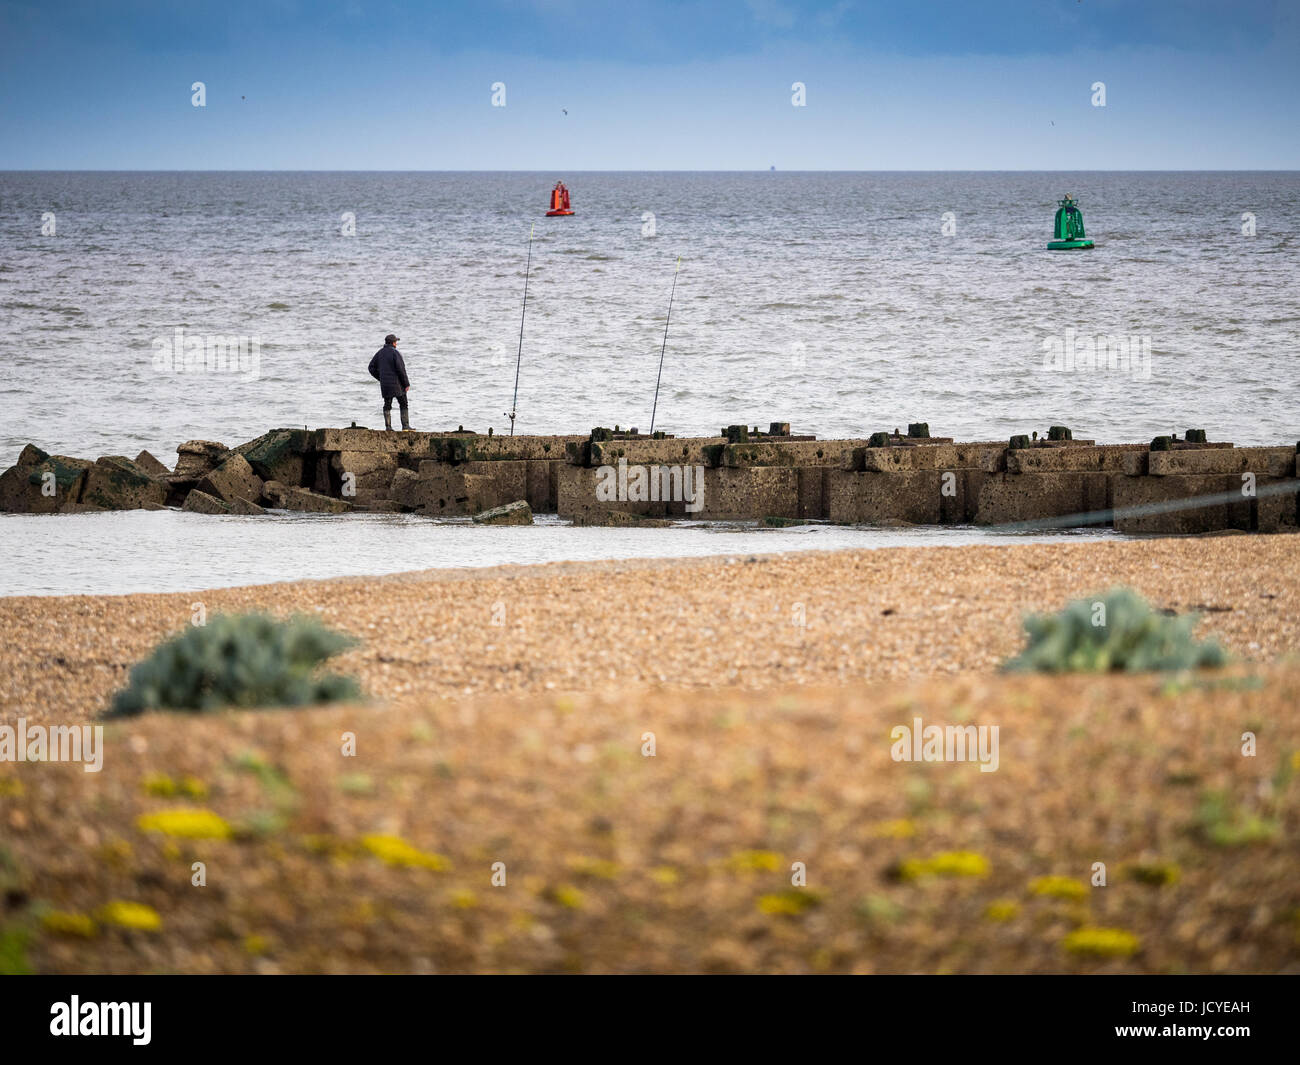 Sea fishing from a rock jetty in the small seaside town of Felixstowe, Suffolk, UK - Stock Image